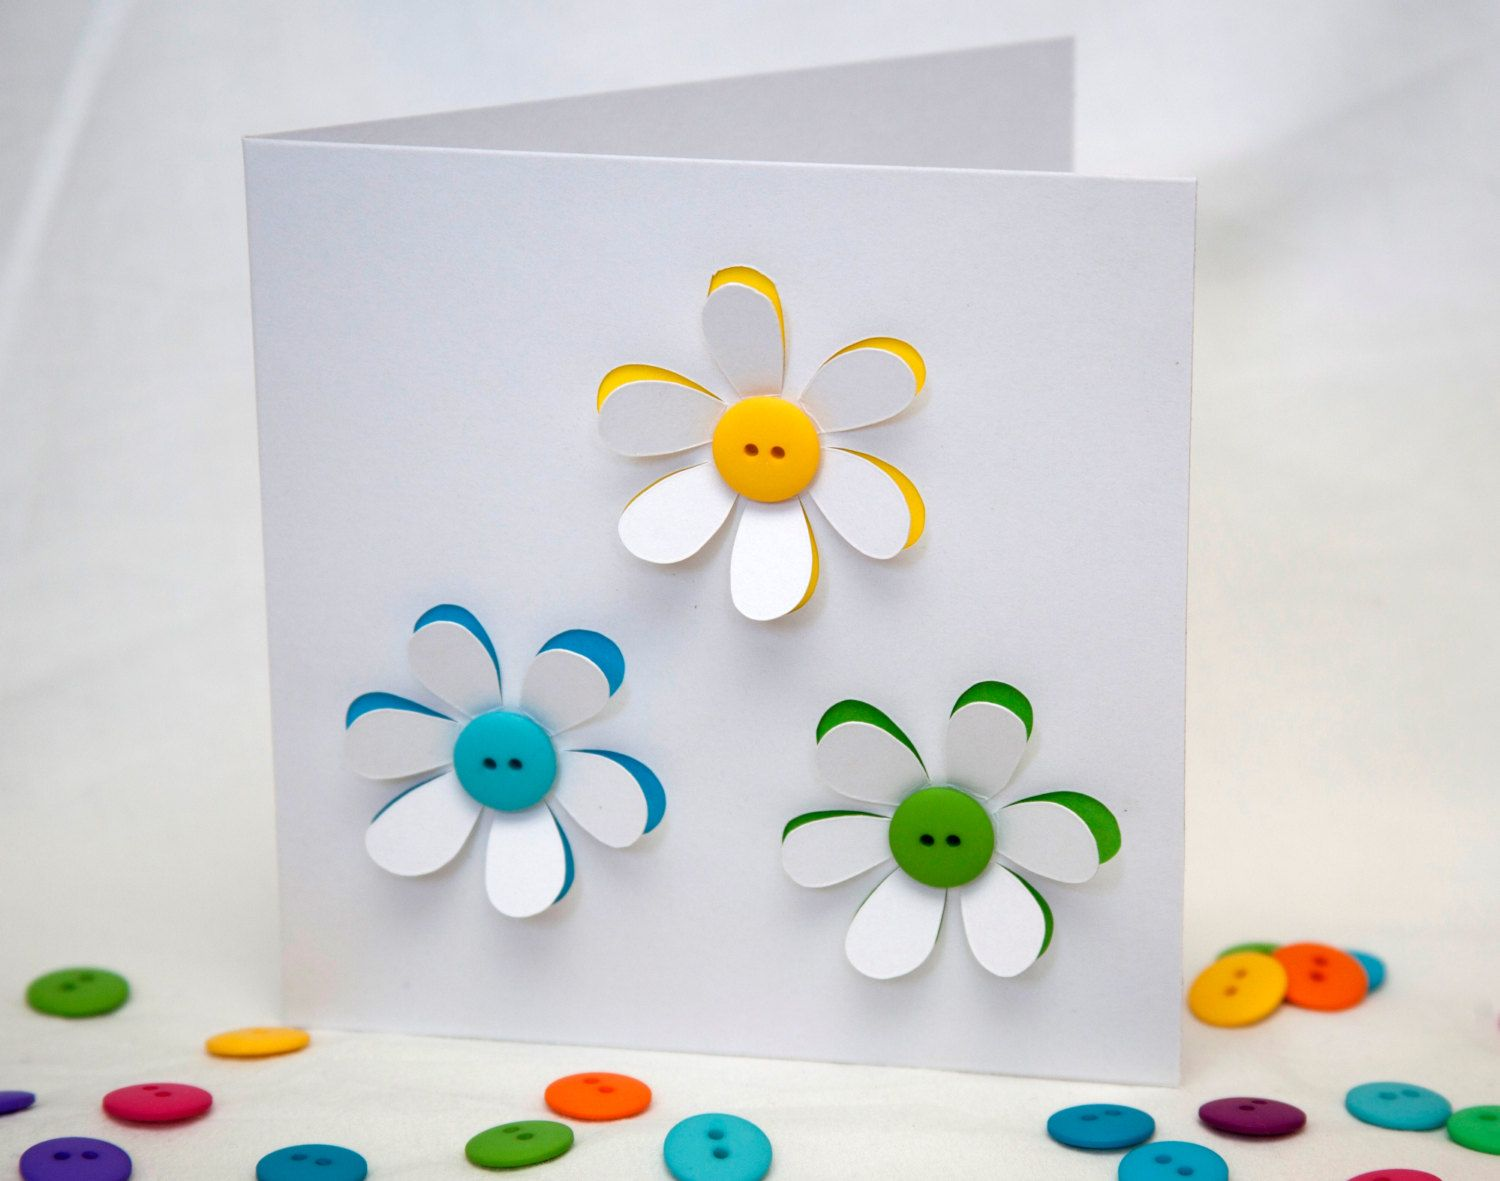 Button flowers card handmade greeting card paper cut flowers button flowers card handmade greeting card paper by nikelcards m4hsunfo